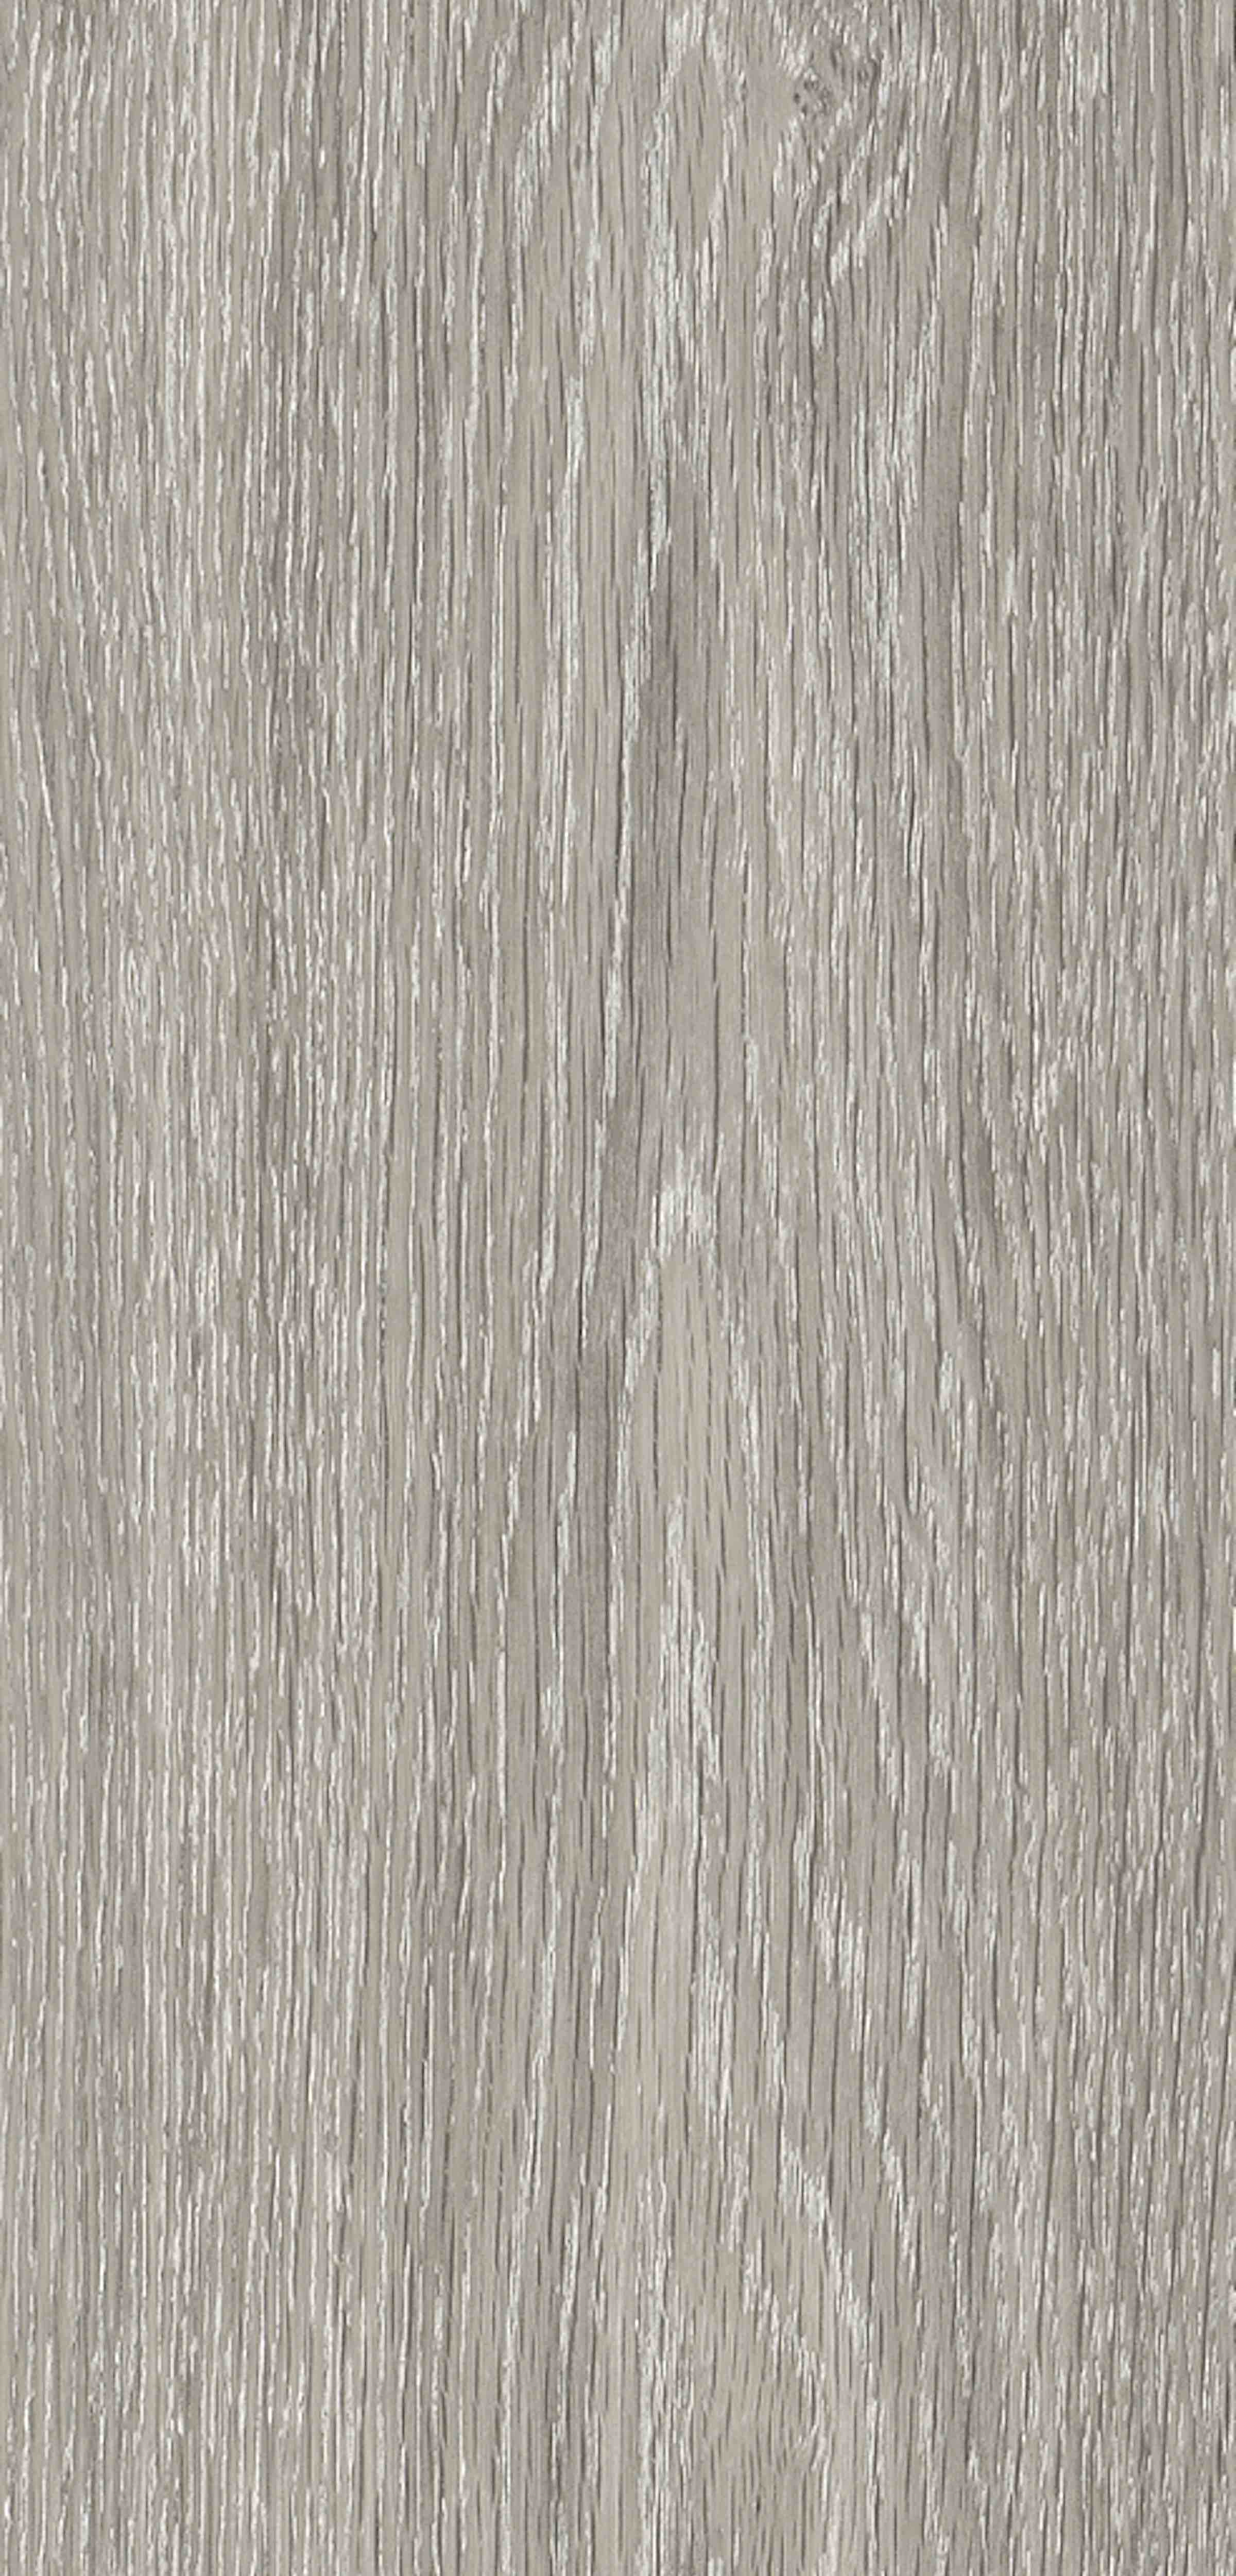 Rappórt | French Grey Elm, 2895 | Paragon Carpet Tiles | Commercial Carpet Tiles